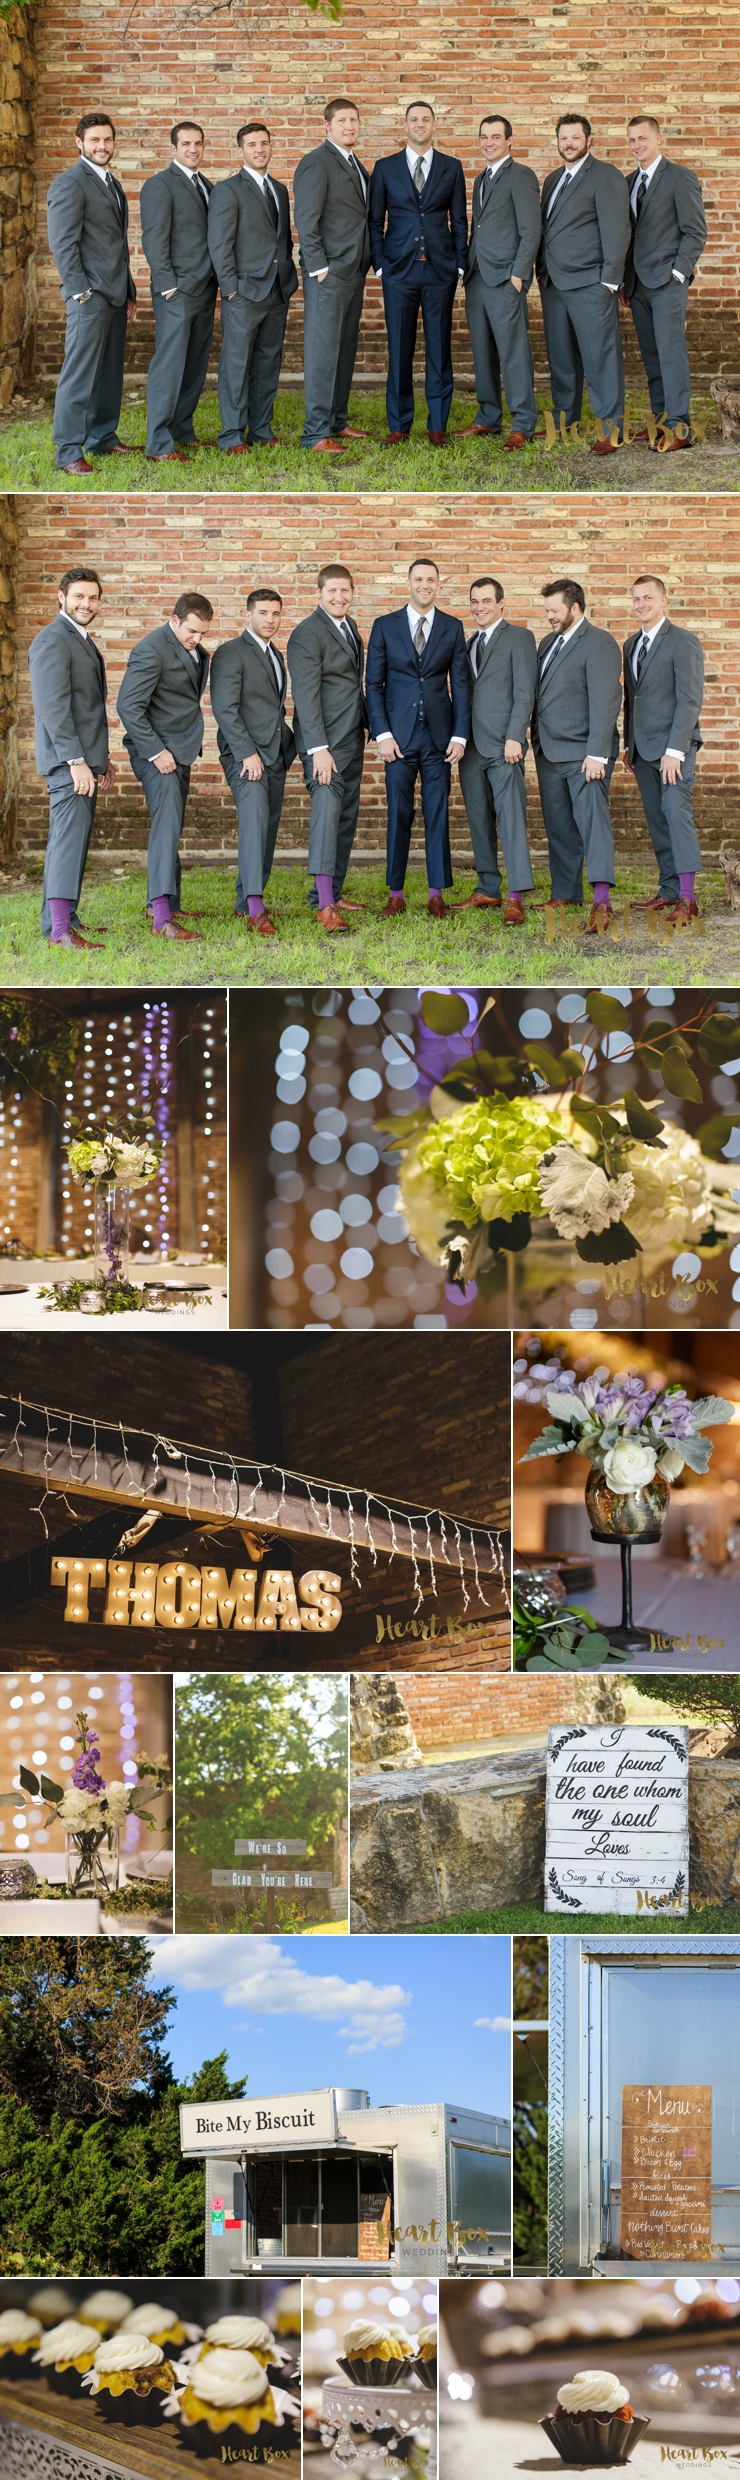 Thomas Wedding Blog Collages 4.jpg